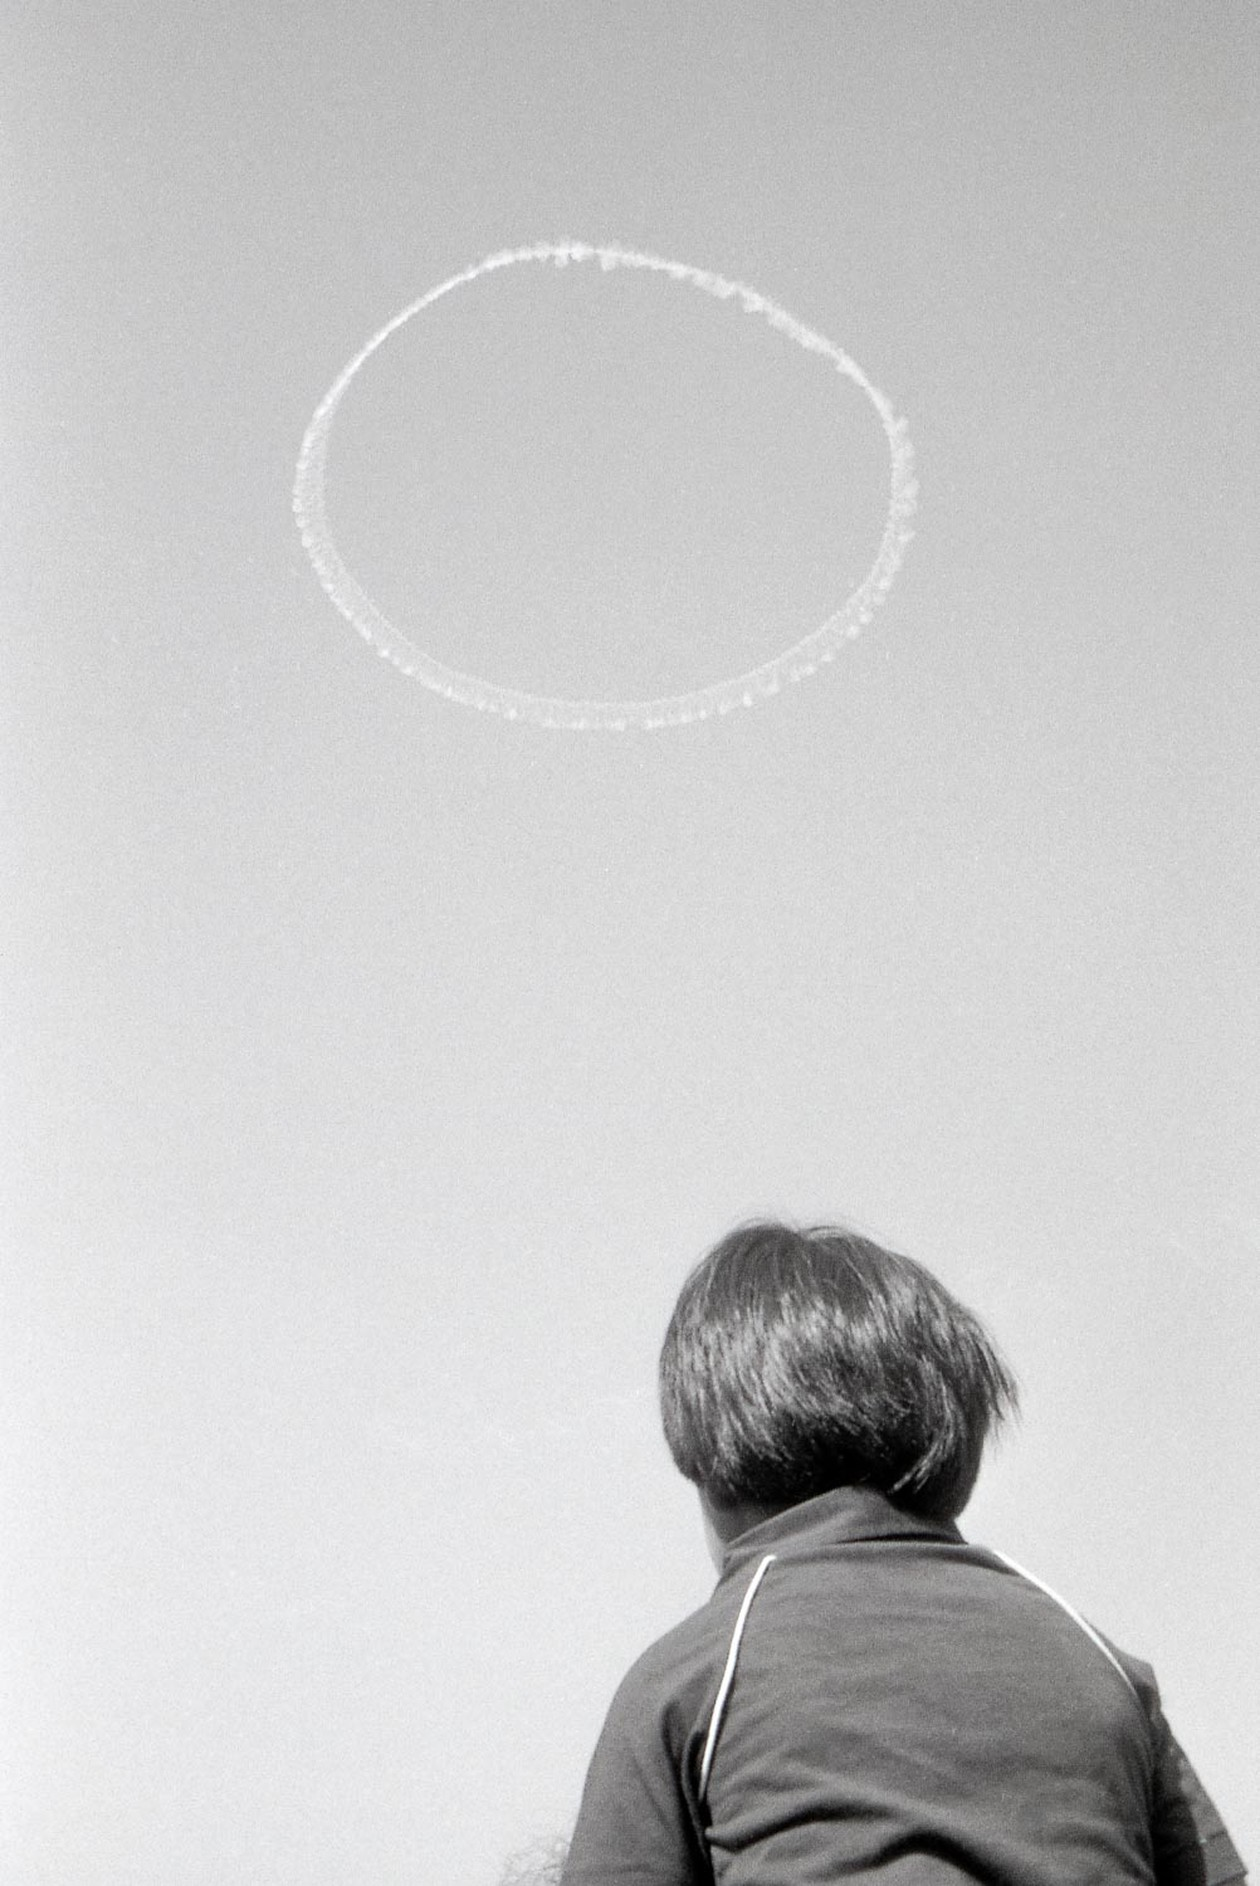 From Angel City West (jet trail) (1983) by Mark Steinmetz